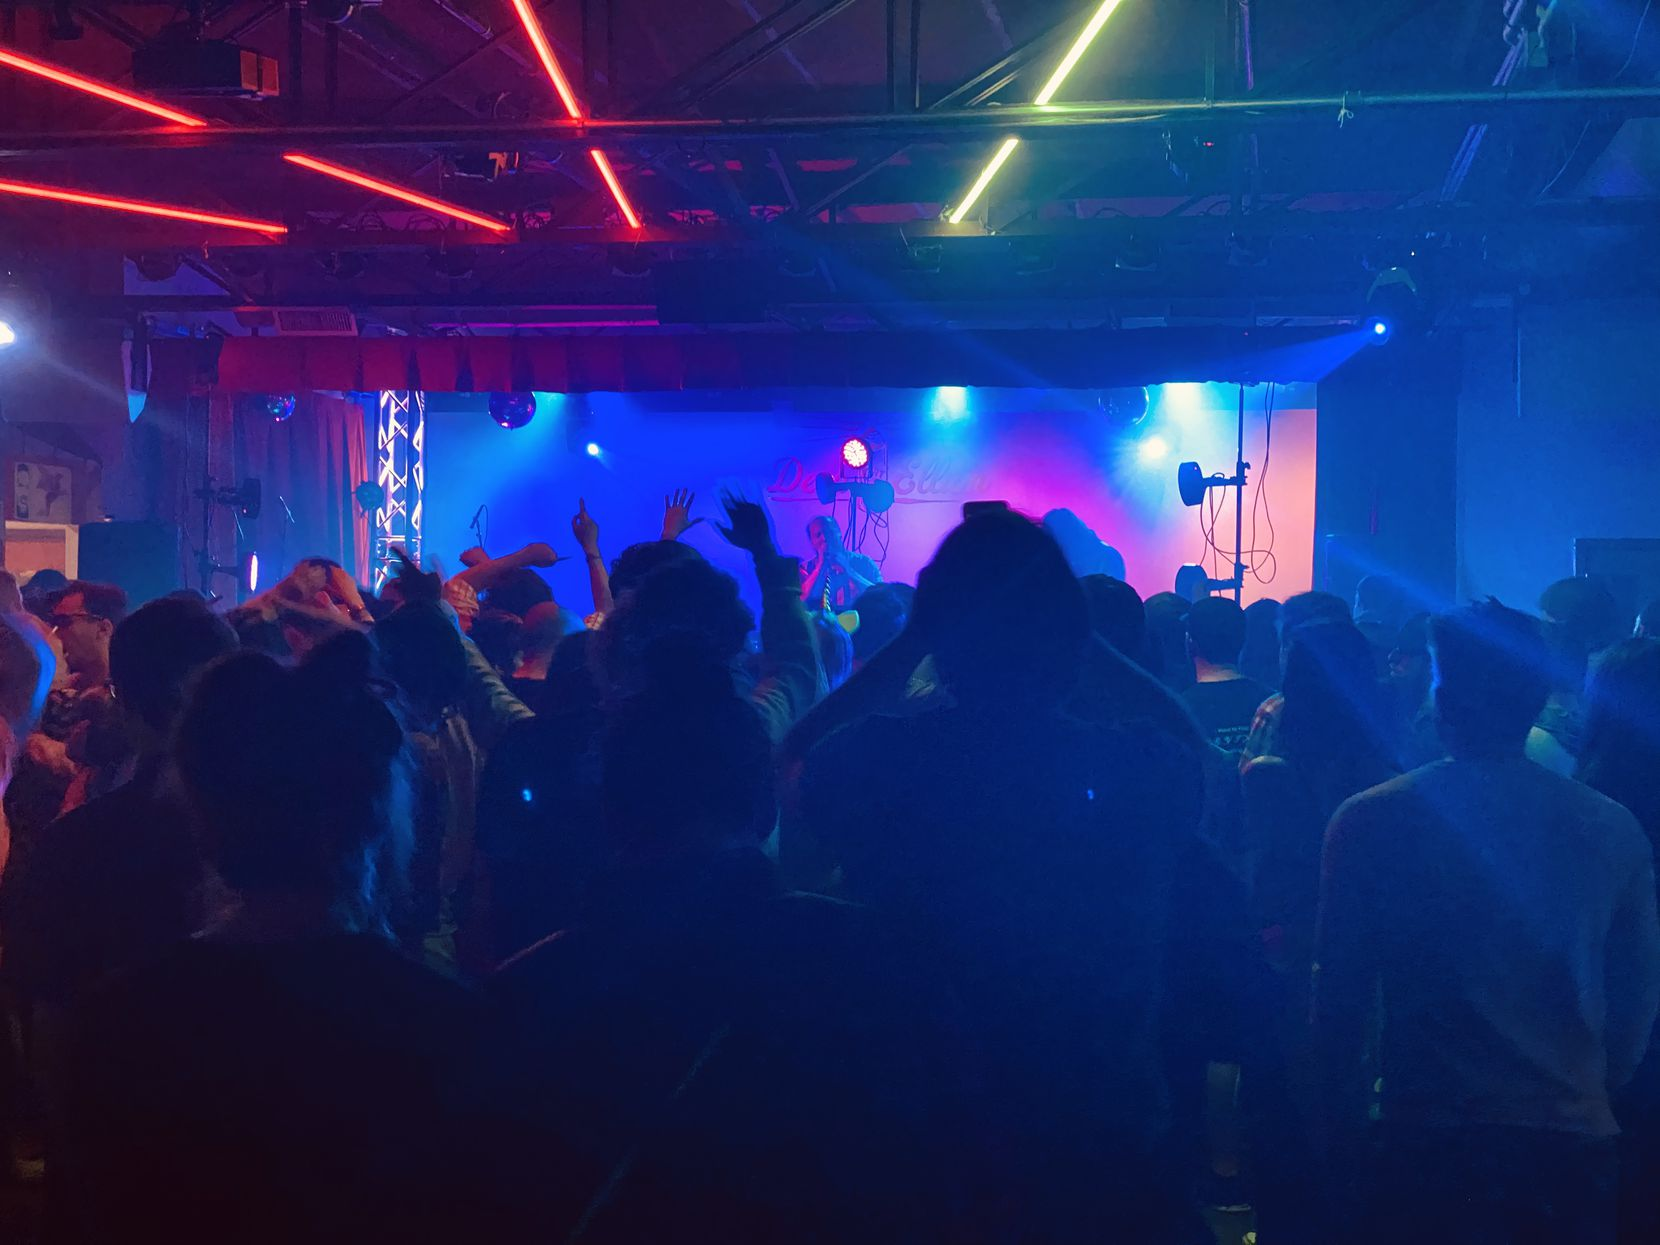 Dan Deacon performs at Deep Ellum Art Co. on Sunday, March 8 in Dallas, Texas.